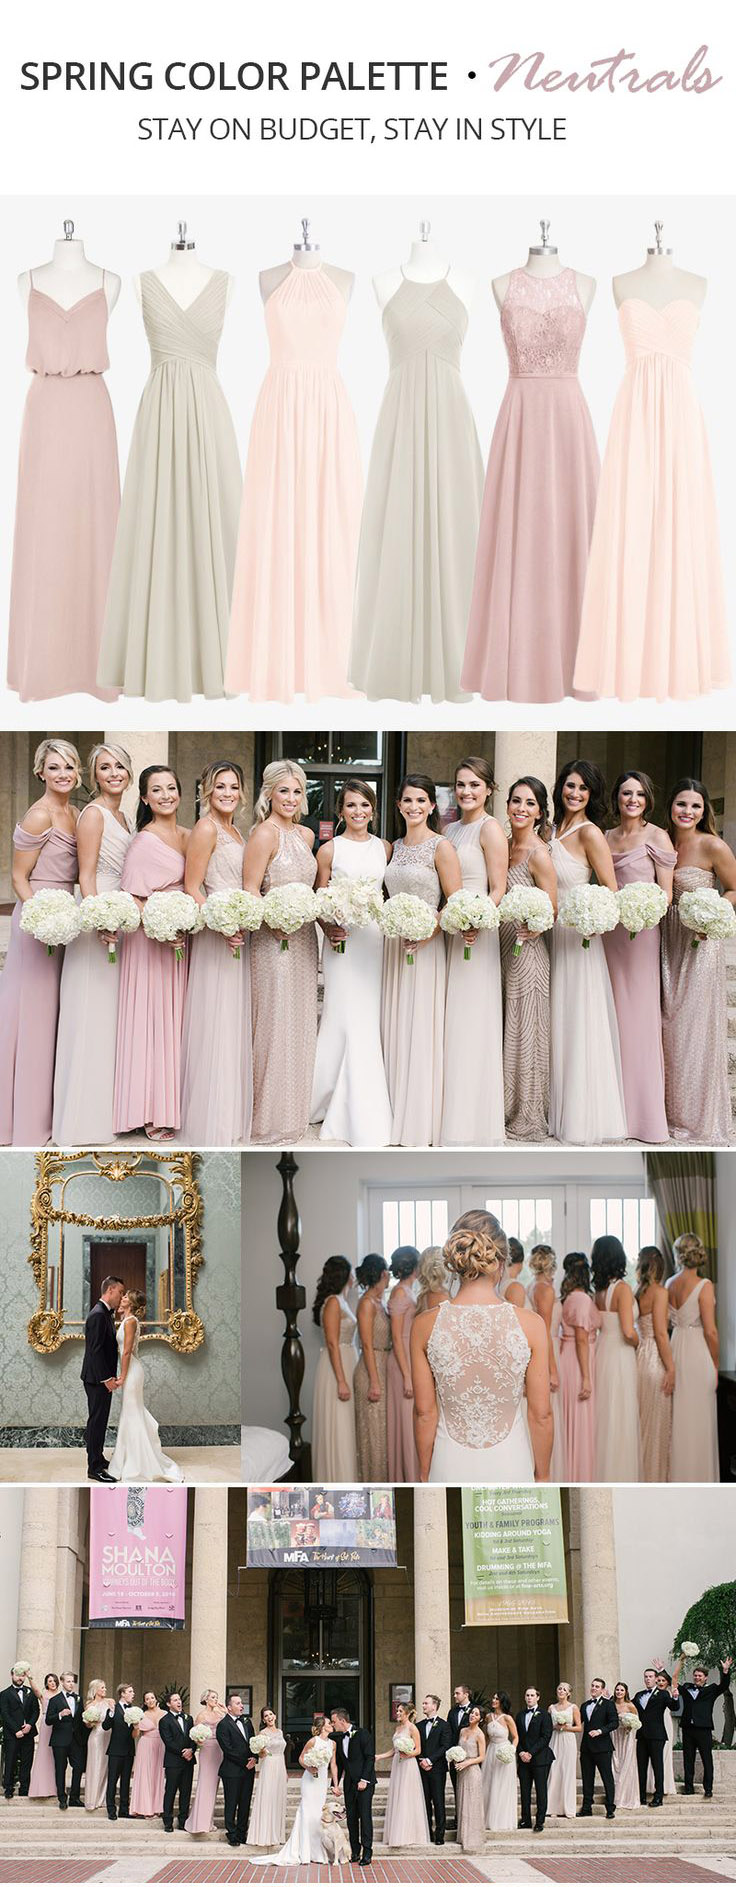 Trending Spring Color Palette for Your Bridesmaid Dresses-Neutrals